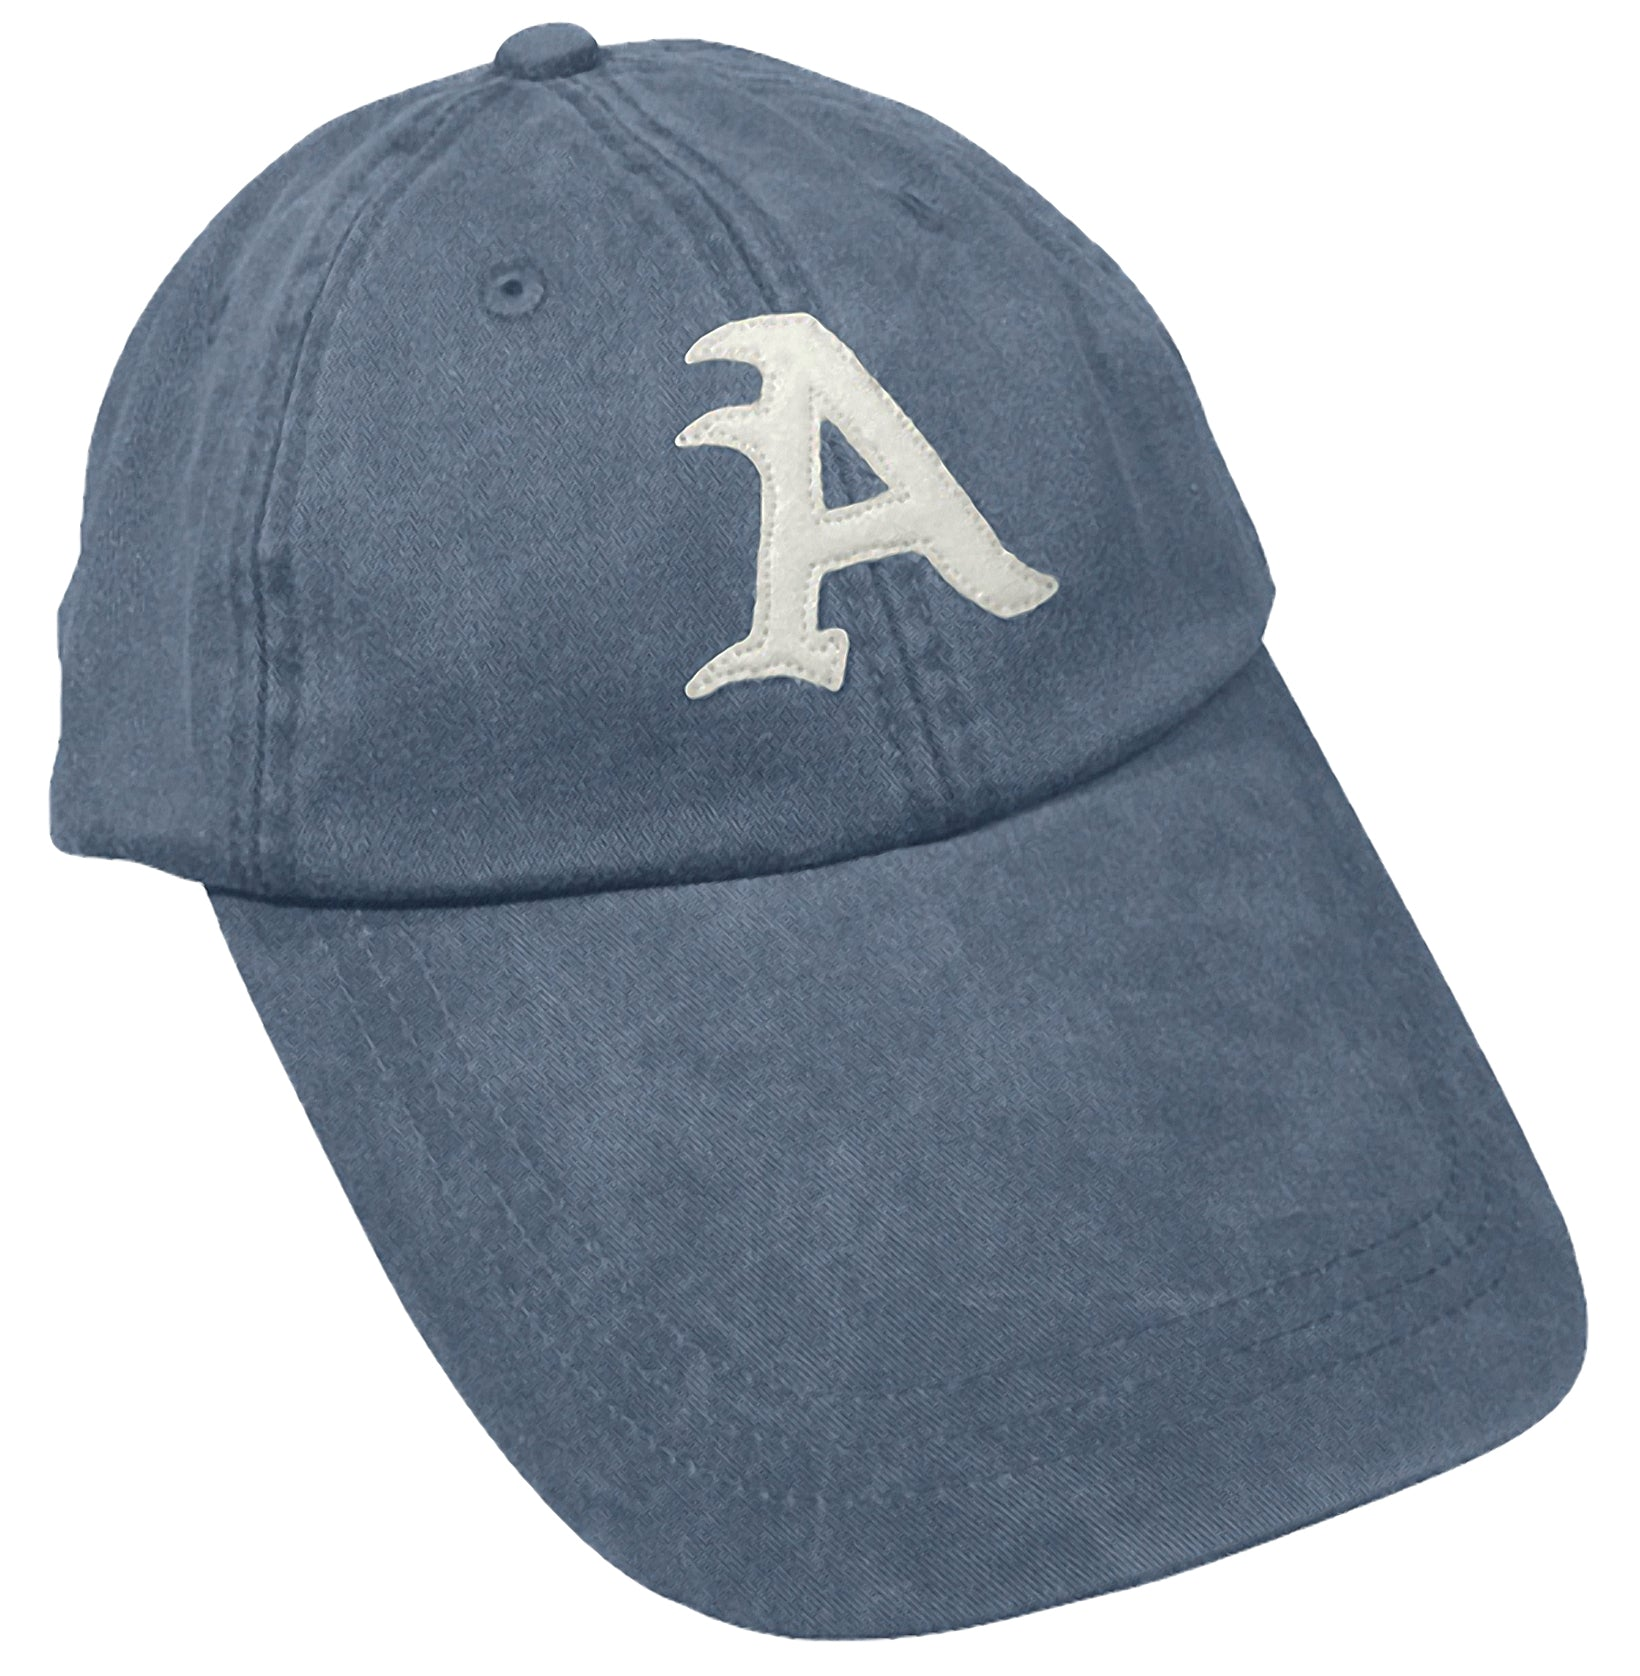 "Almendares Alacranes ""Coobla"" Long Bill Cap - Negro League Baseball Shop"